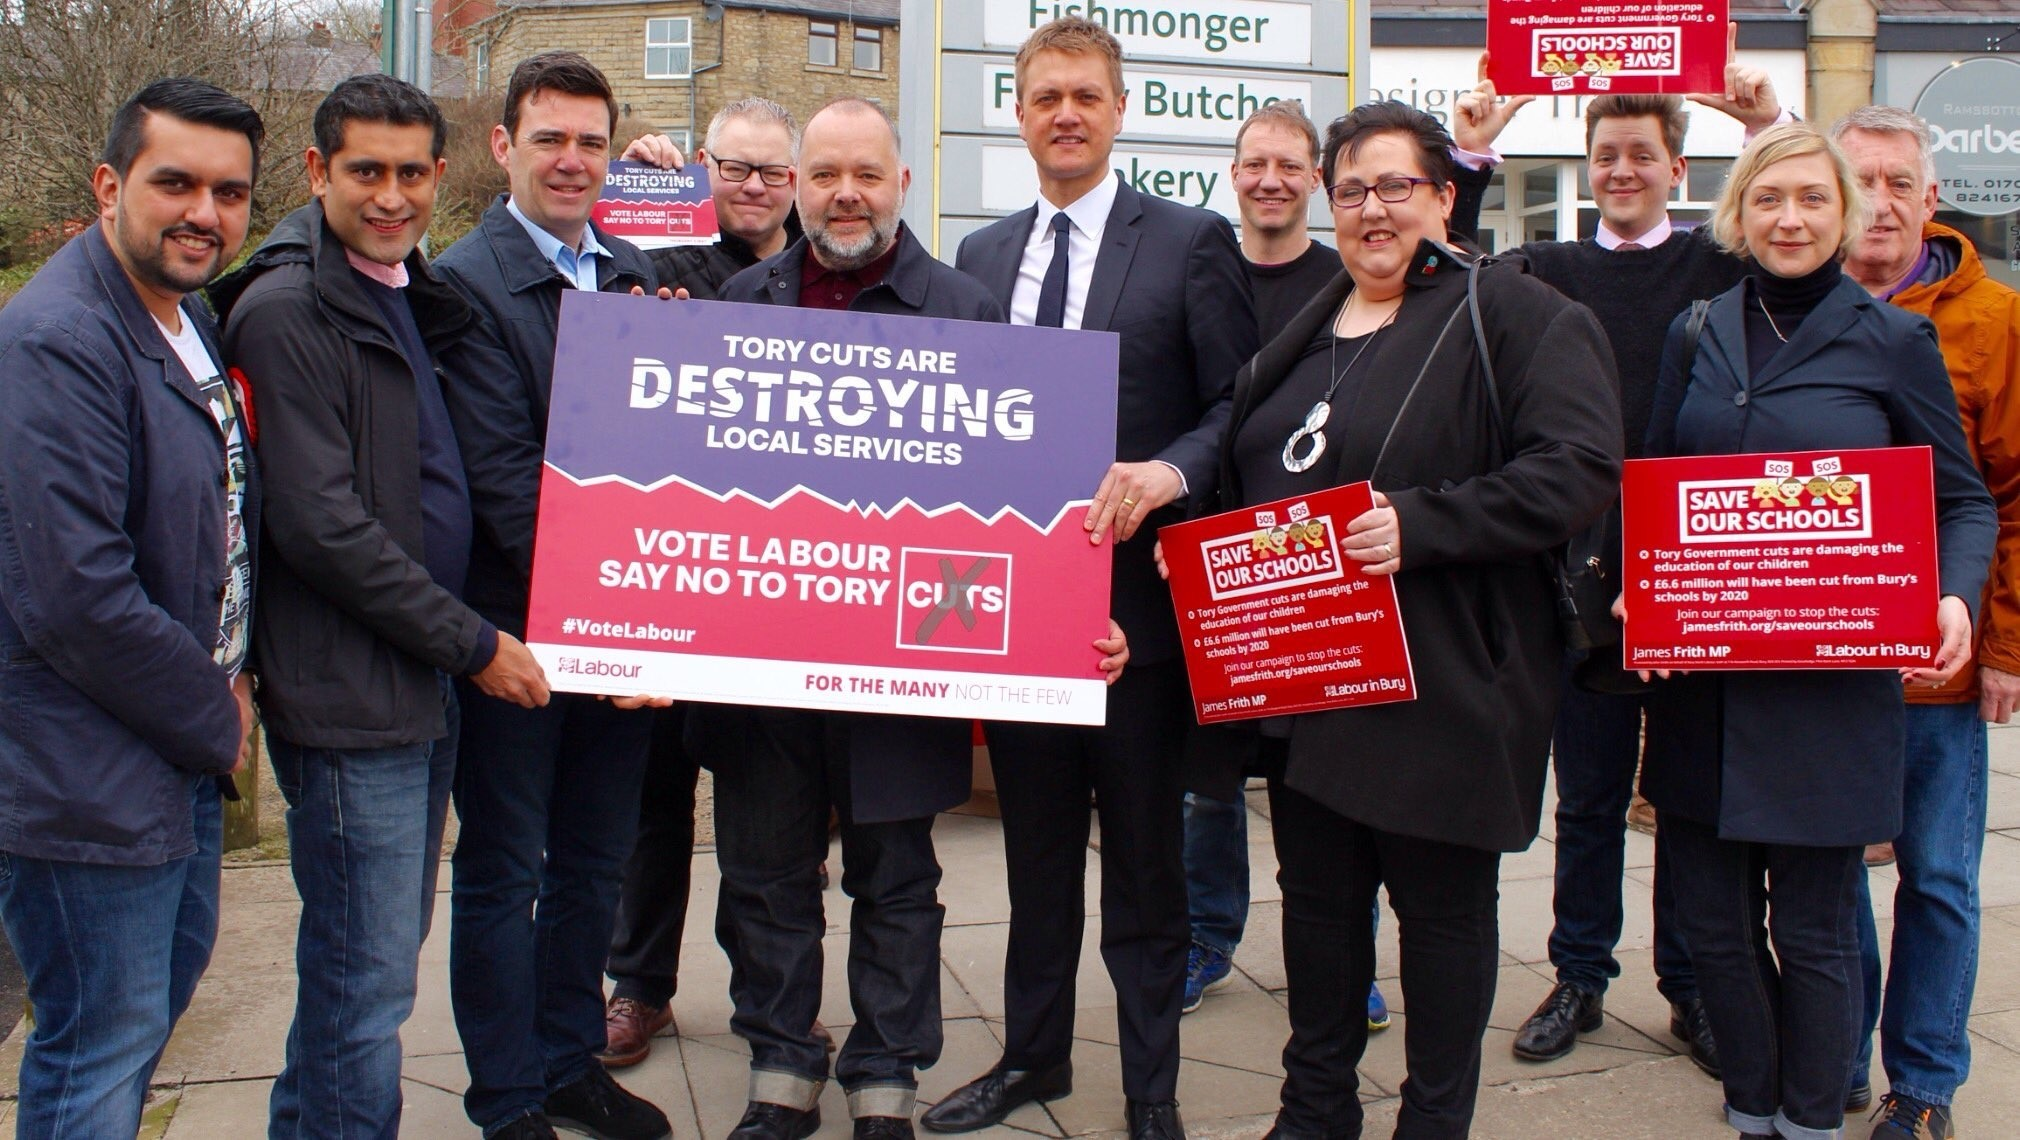 Andy Burnham was joined in Ramsbottom by Labour election candidate Kevin Thomas, Bury Council leader Rishi Shori, Bury North MP James Frith, and others